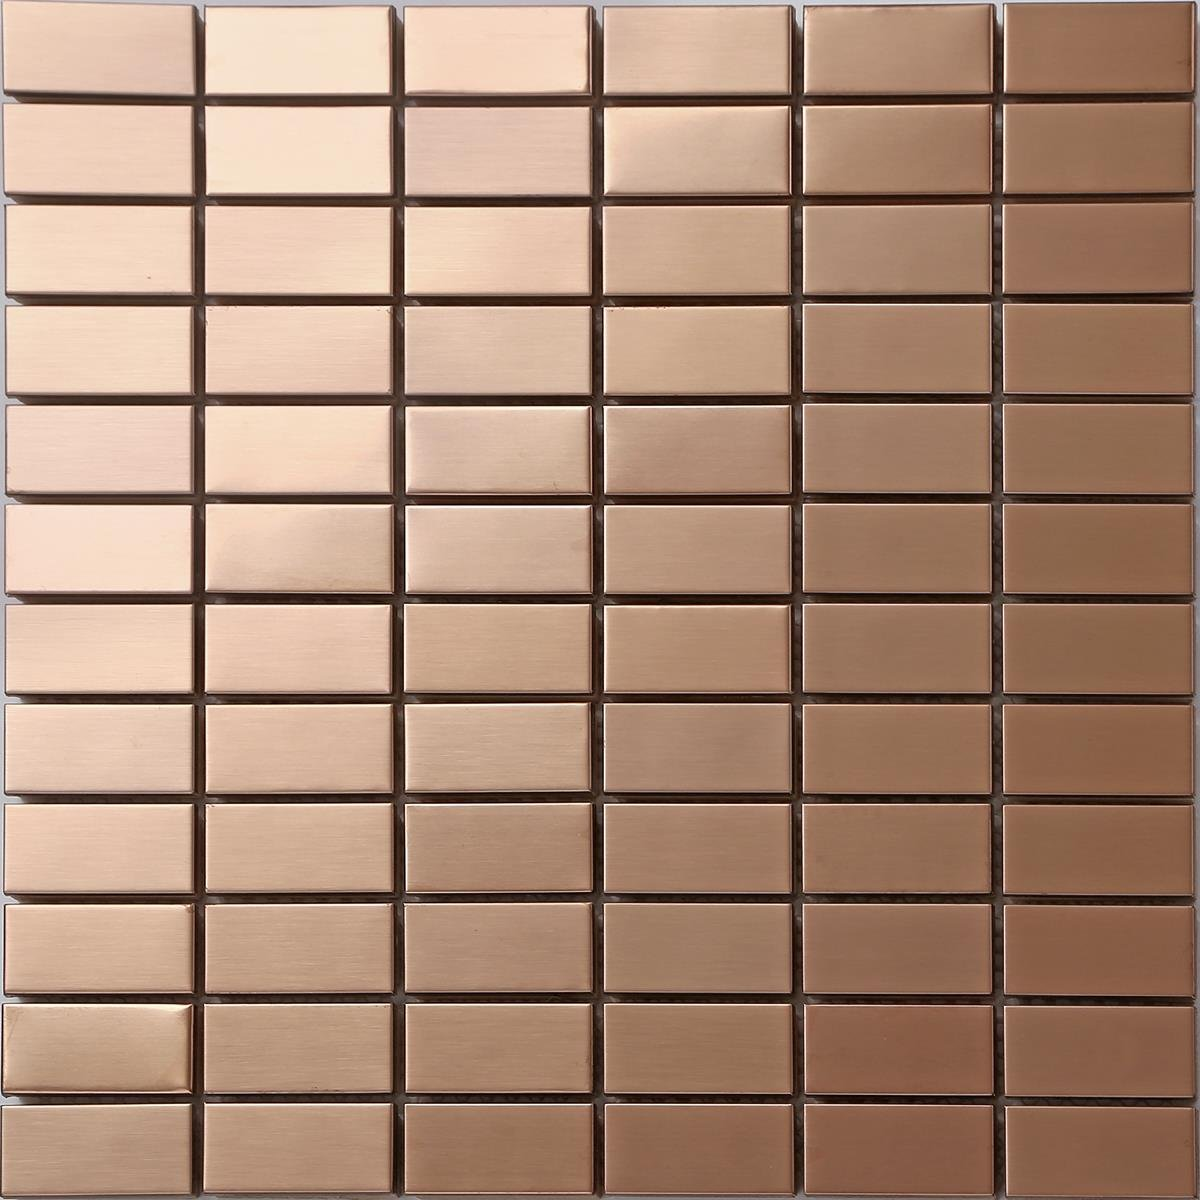 Grand Taps Copper effect Stainless Steel Mosaic Wall Tiles (MT0105) (11 Sheets)